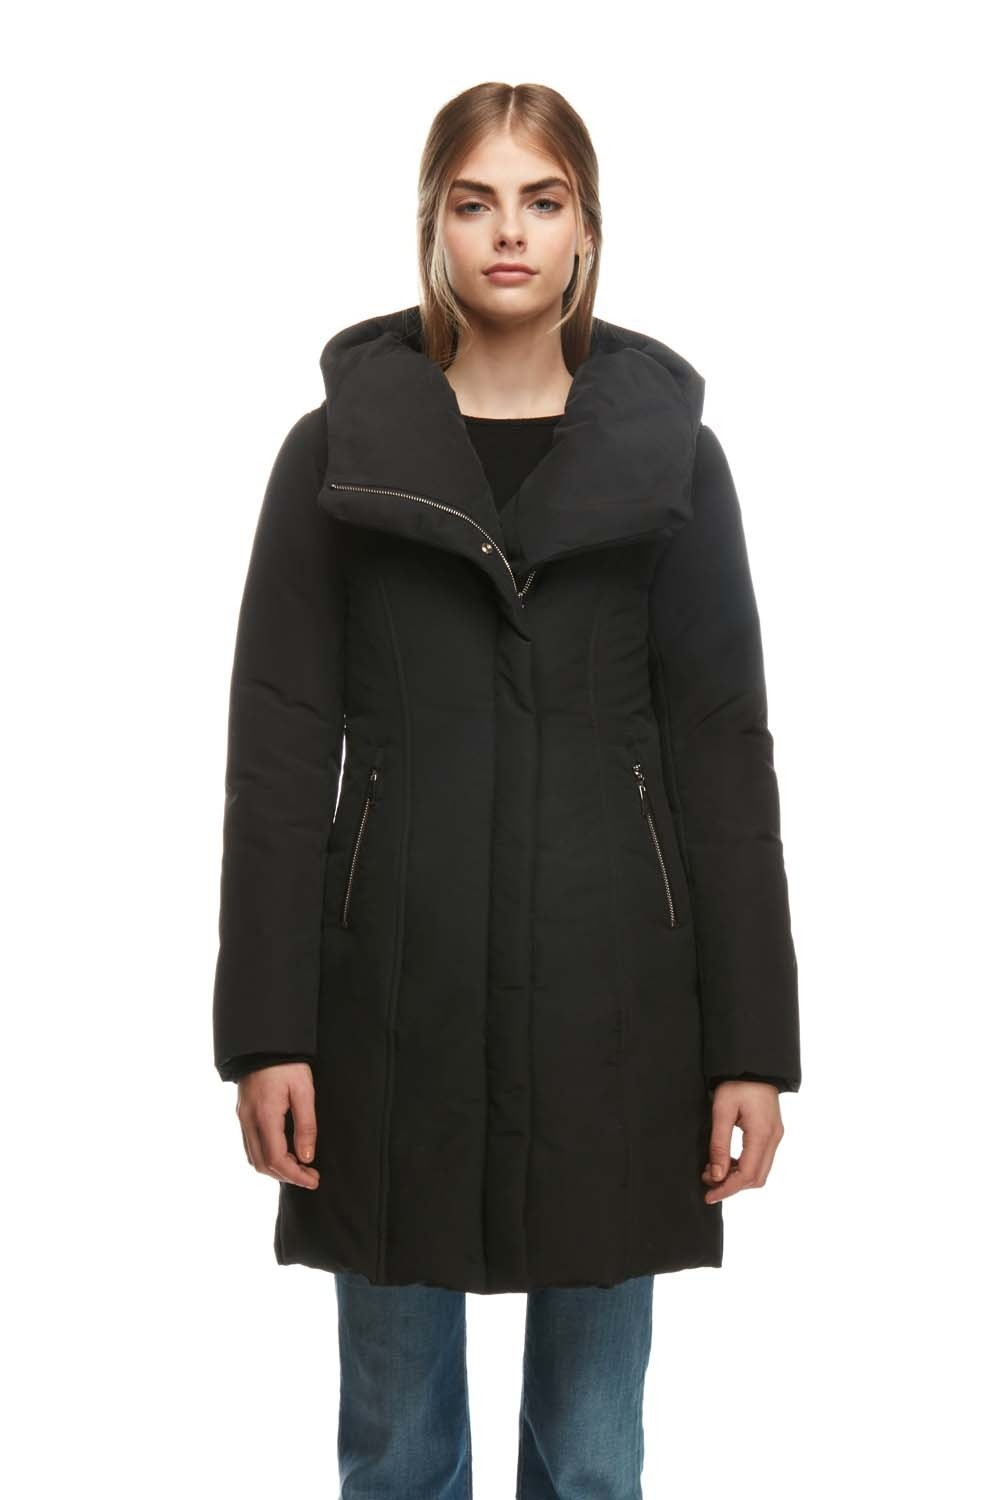 Montebello - Parka for Women